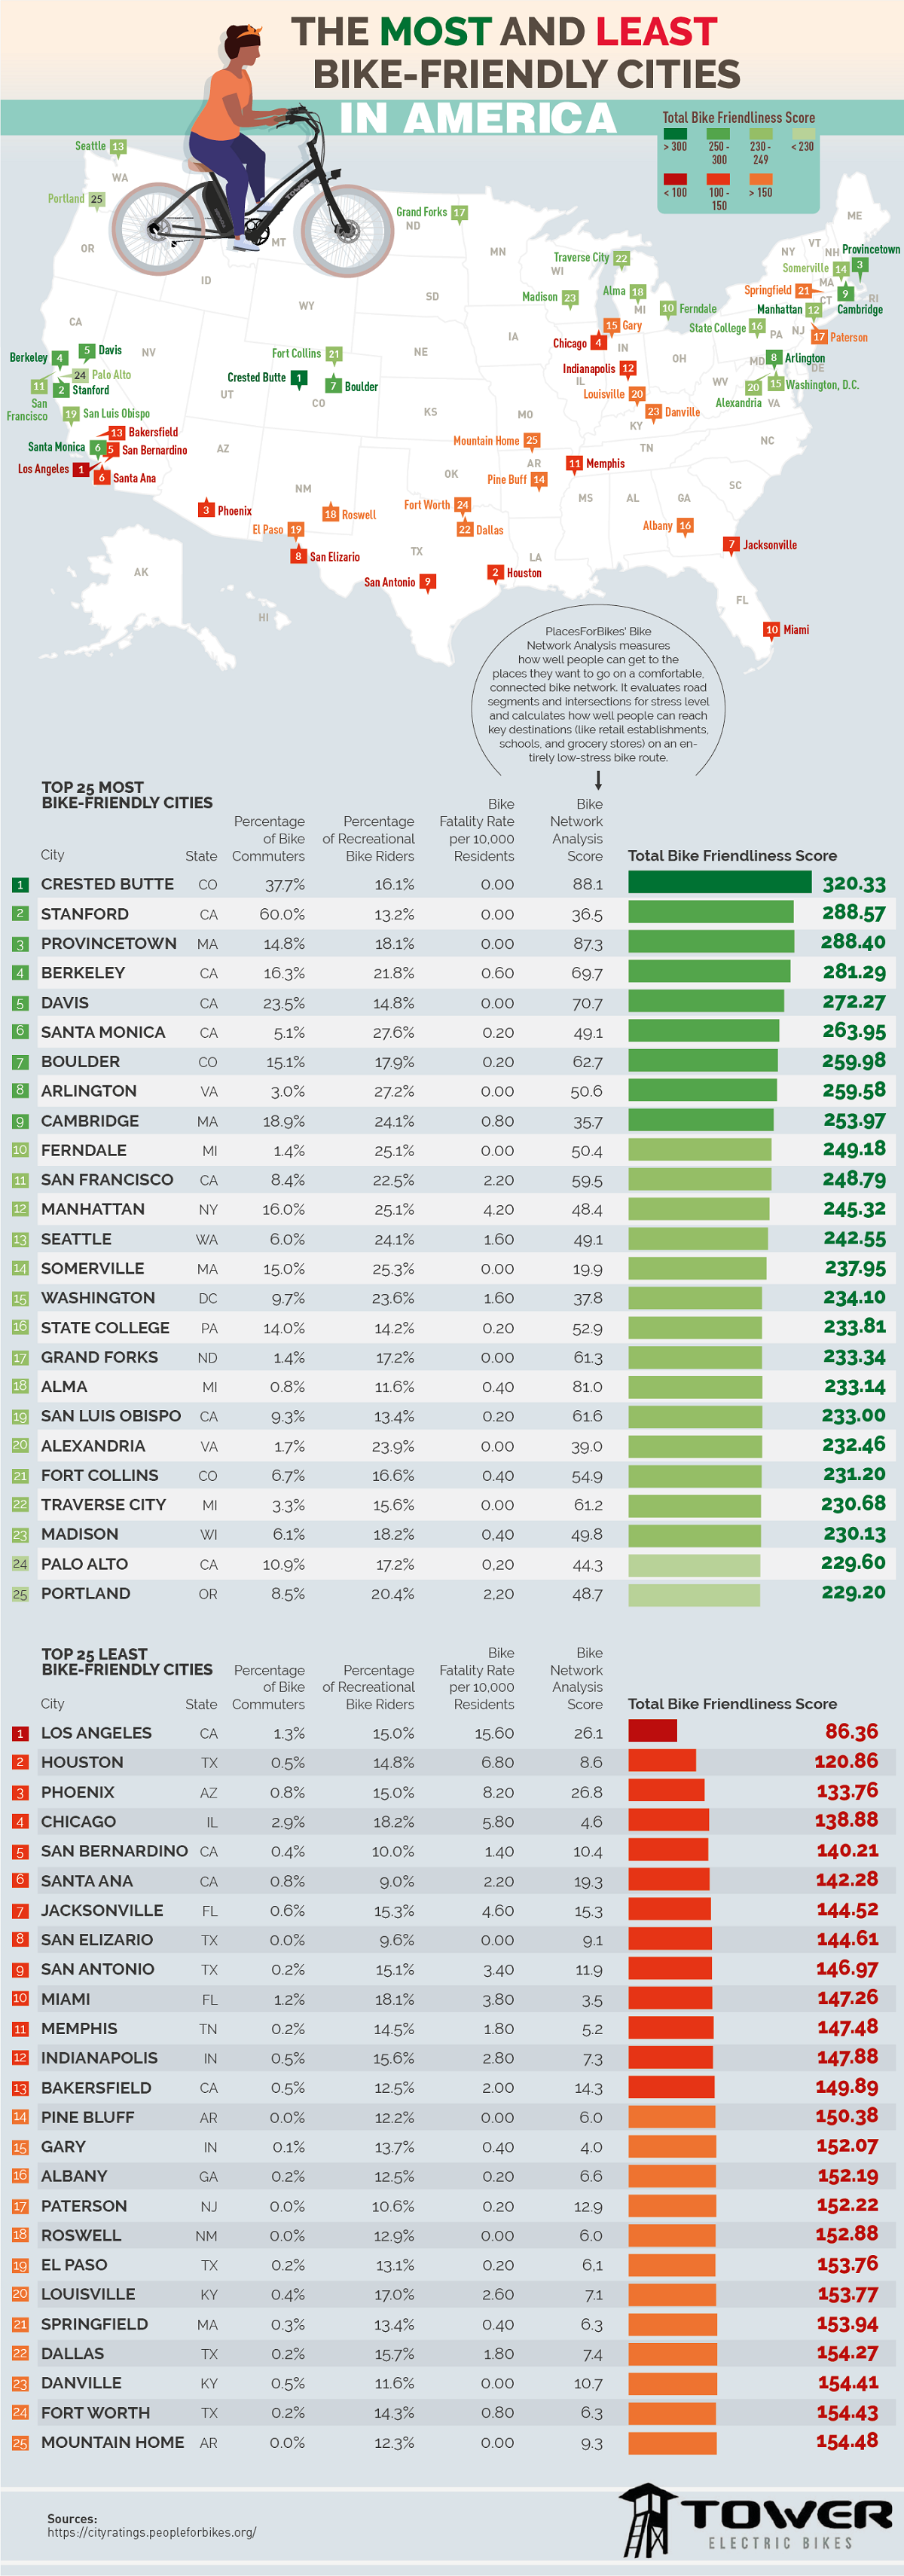 the-most-and-least-bike-friendly-cities-in-america-infographic